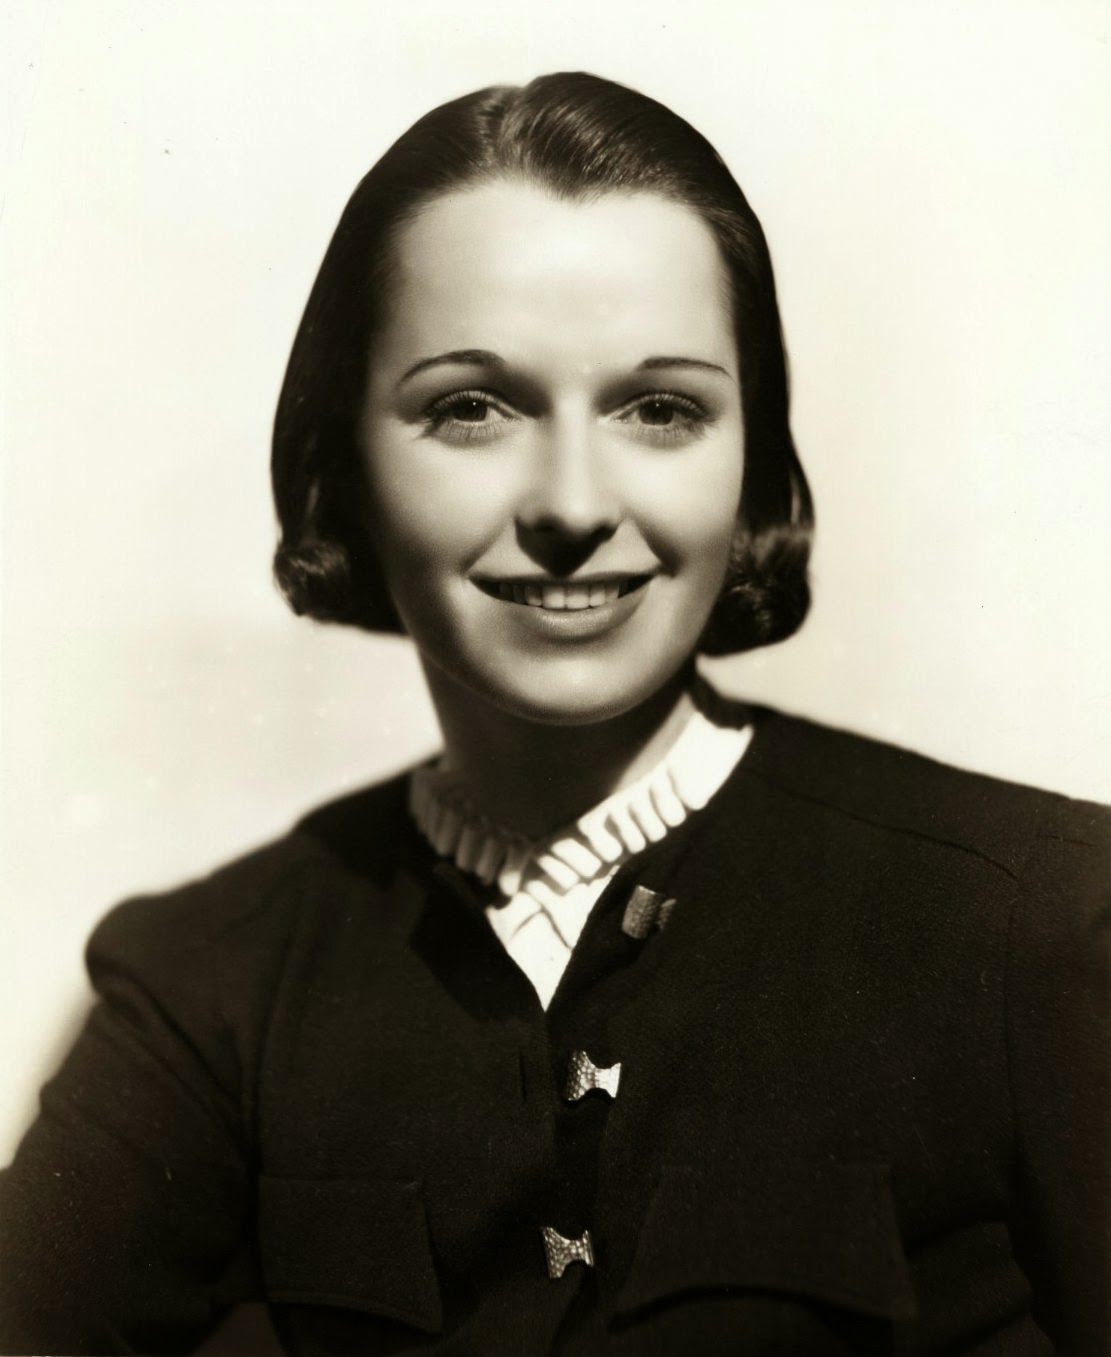 Silent Volume: Louise Brooks, born this day